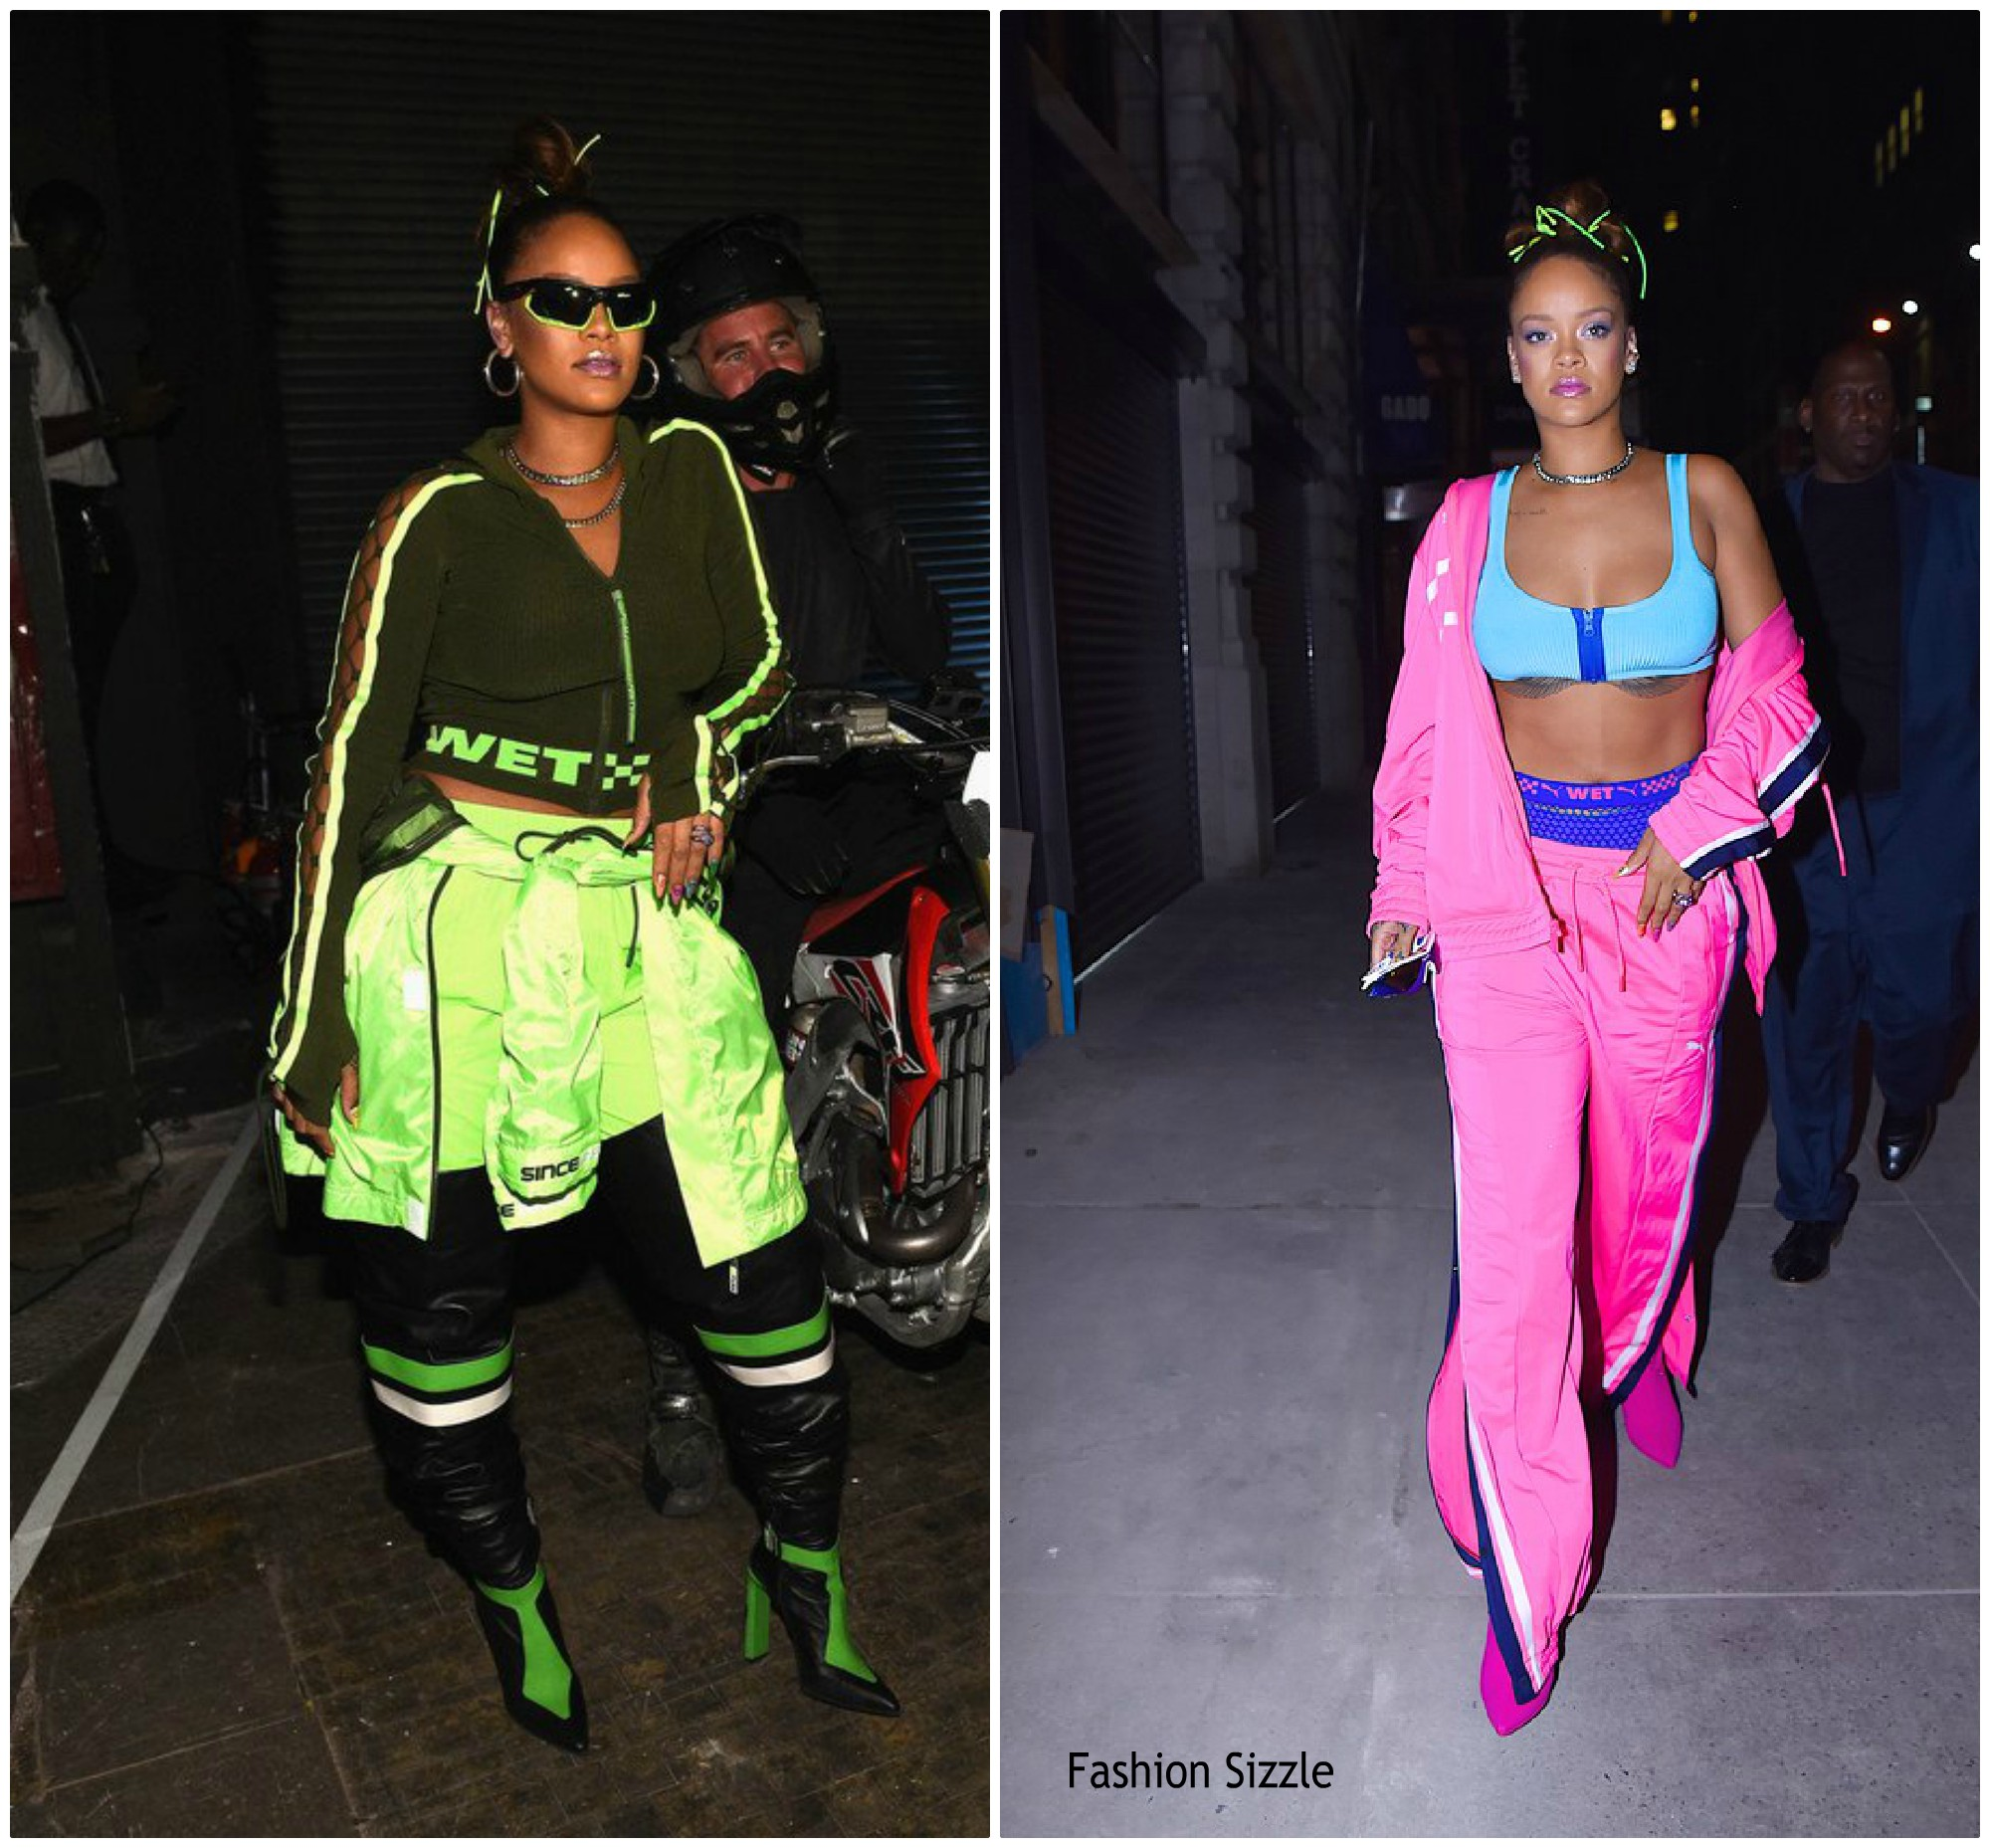 incompleto compromiso Laos  Rihanna In Fenty x Puma - Celebrate S/S 2018 New York Fashion Week Show -  Fashionsizzle